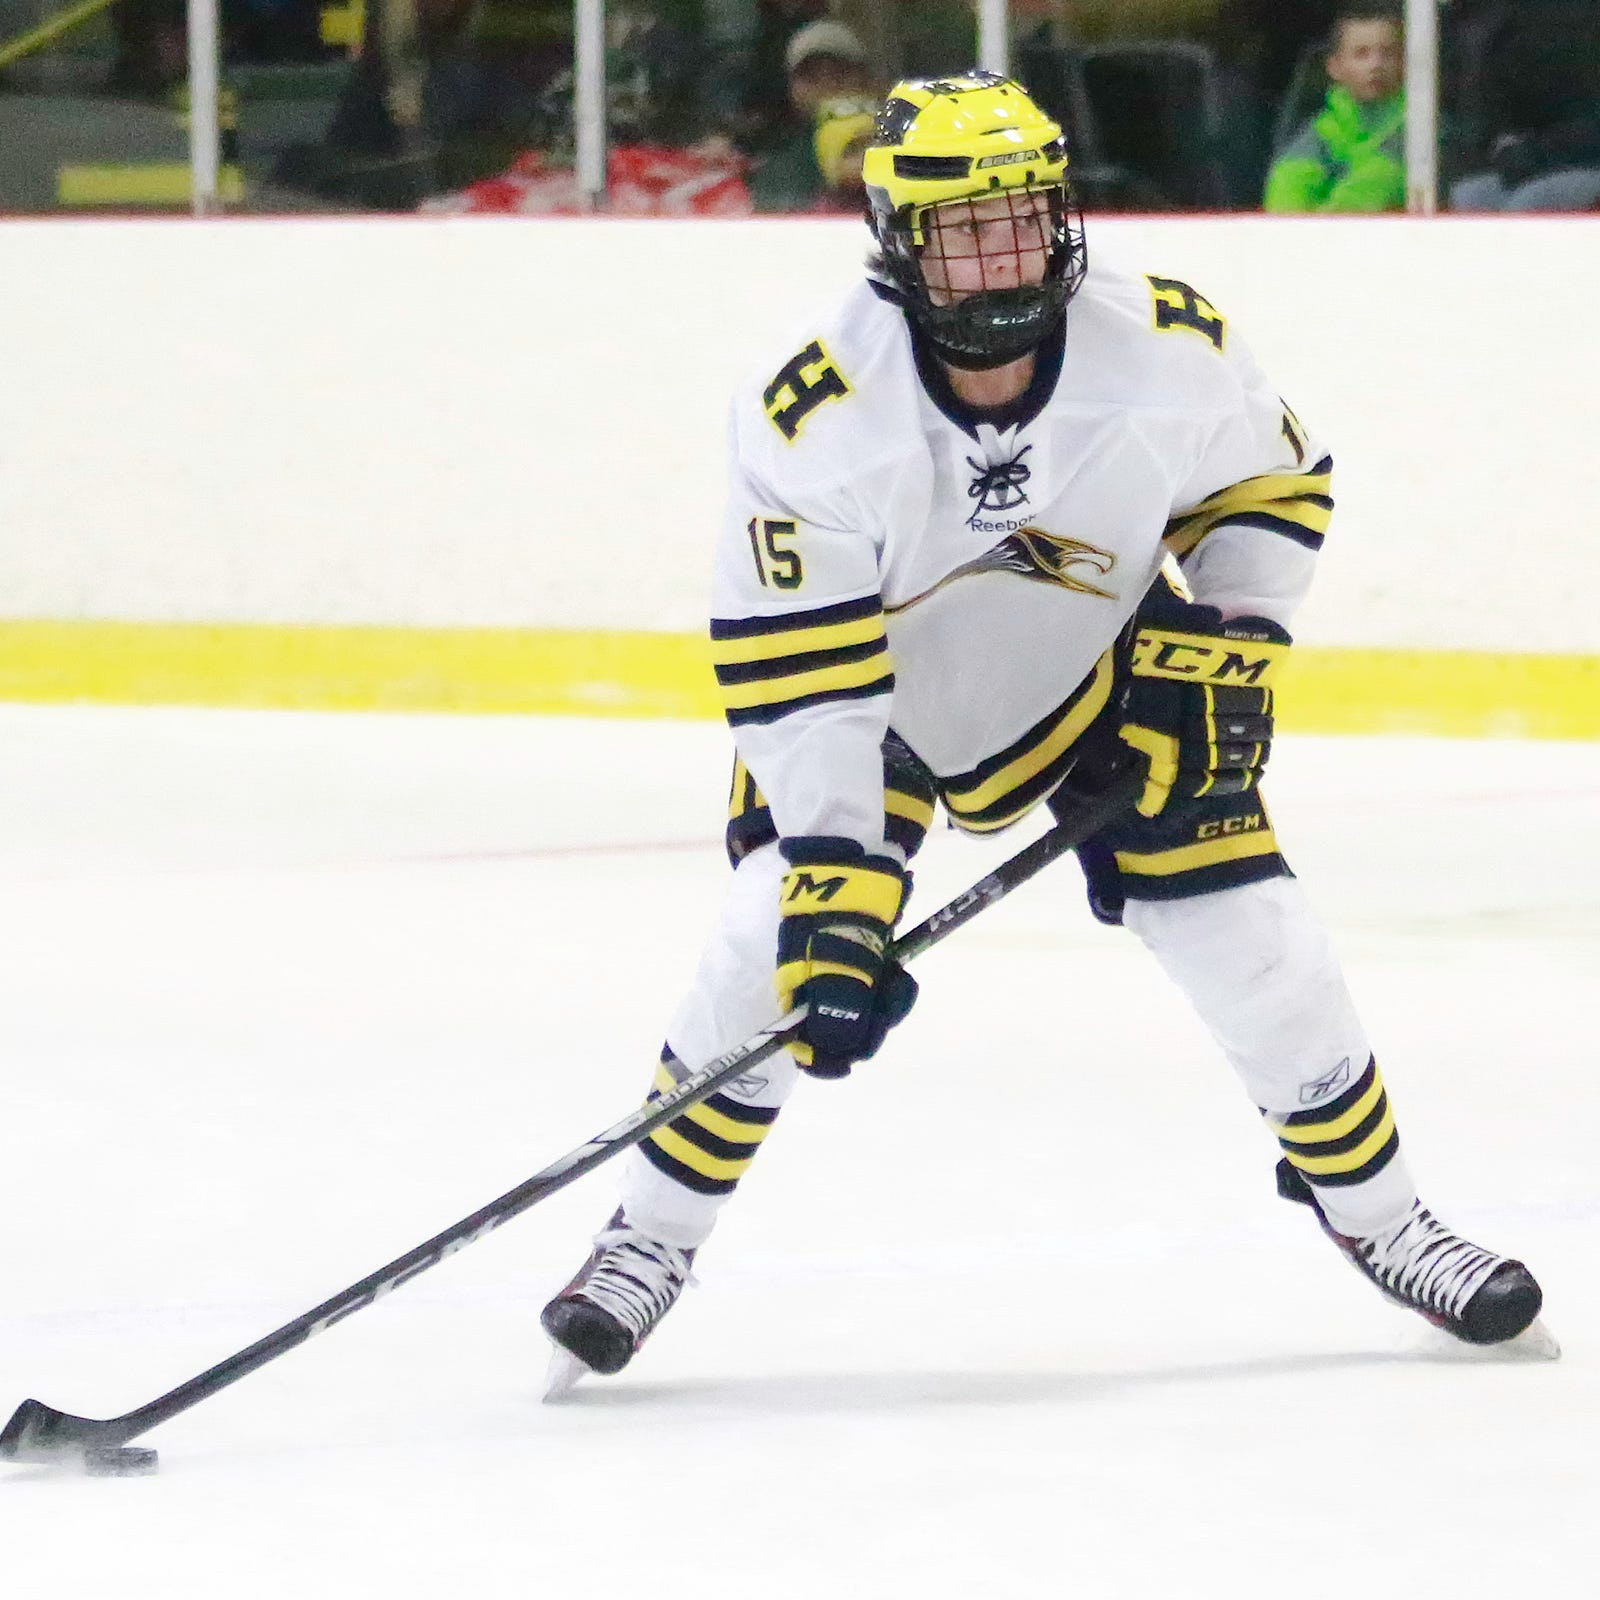 Hartland passes first tough test of hockey season; Pinckney wins opener